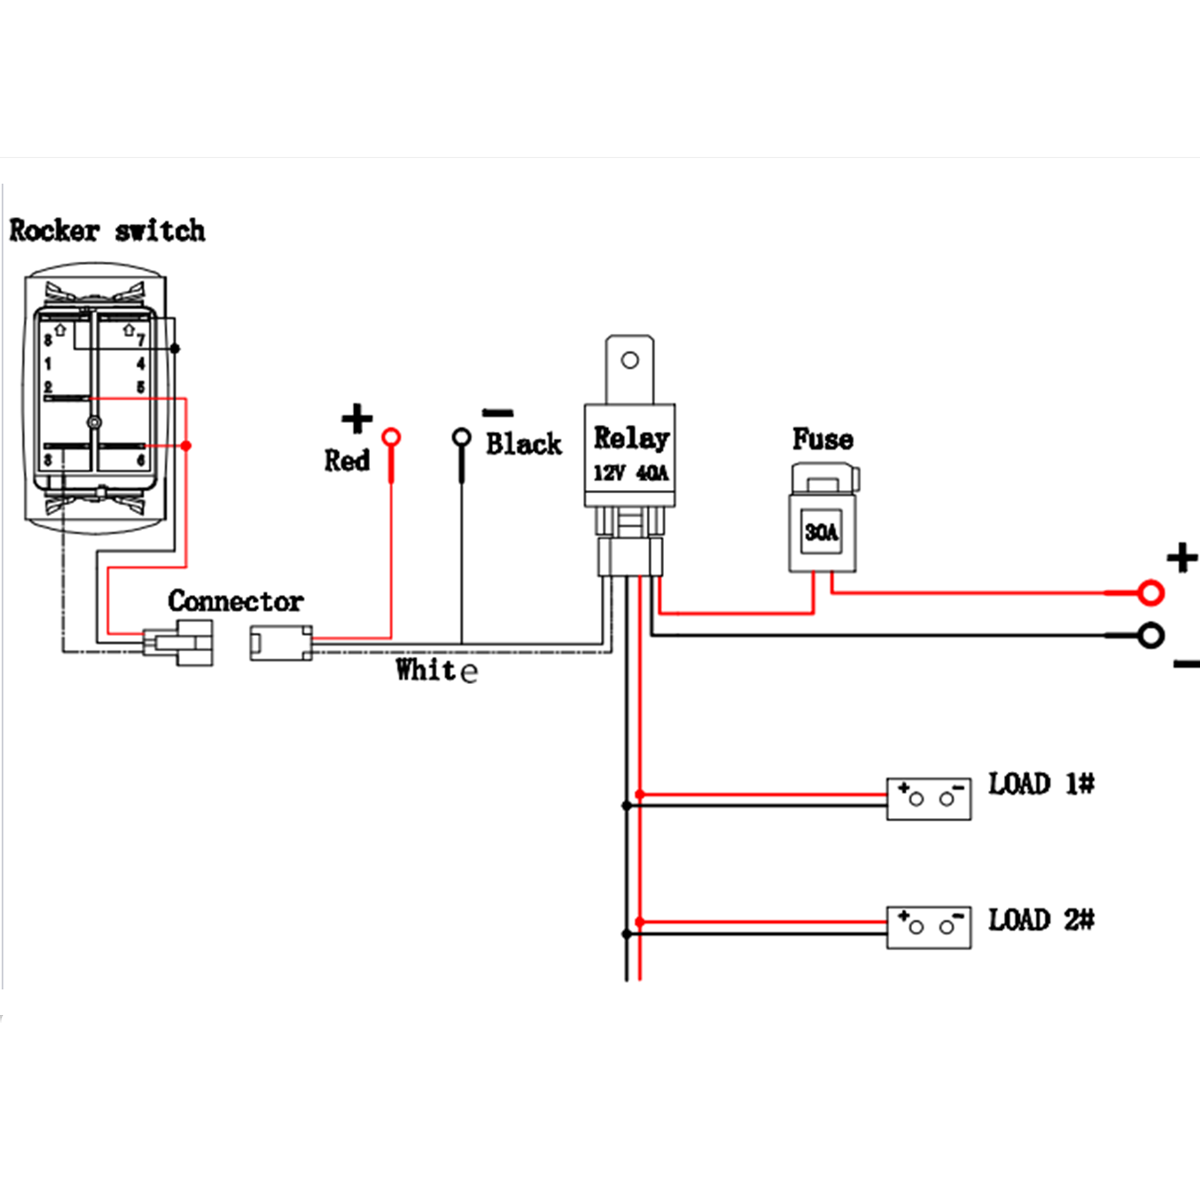 12V Light Switch Wiring Diagram from schematron.org